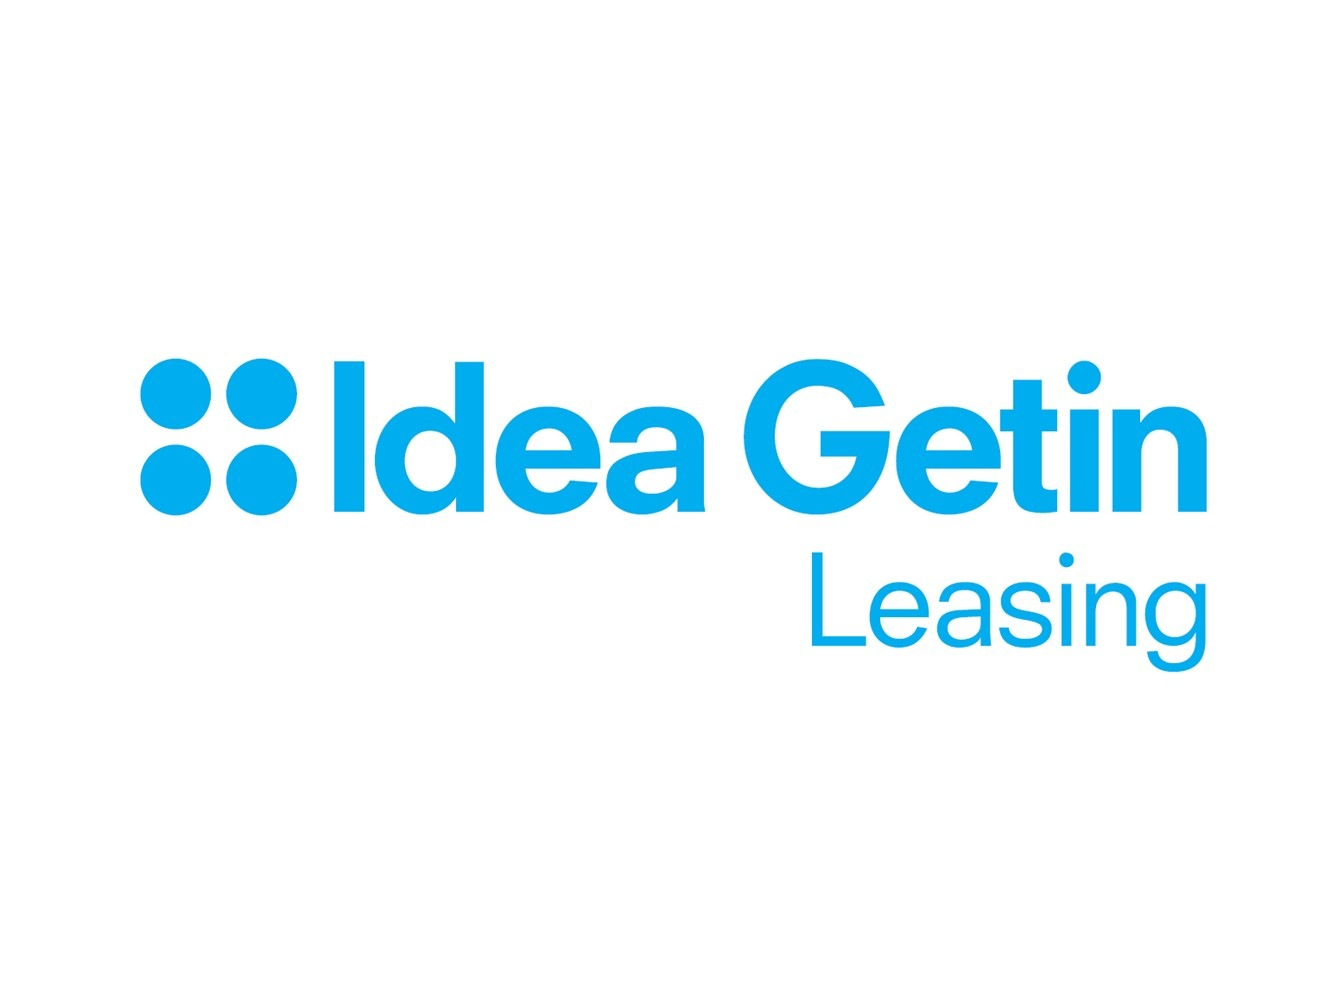 goodleasing   Idea Getin Leasing